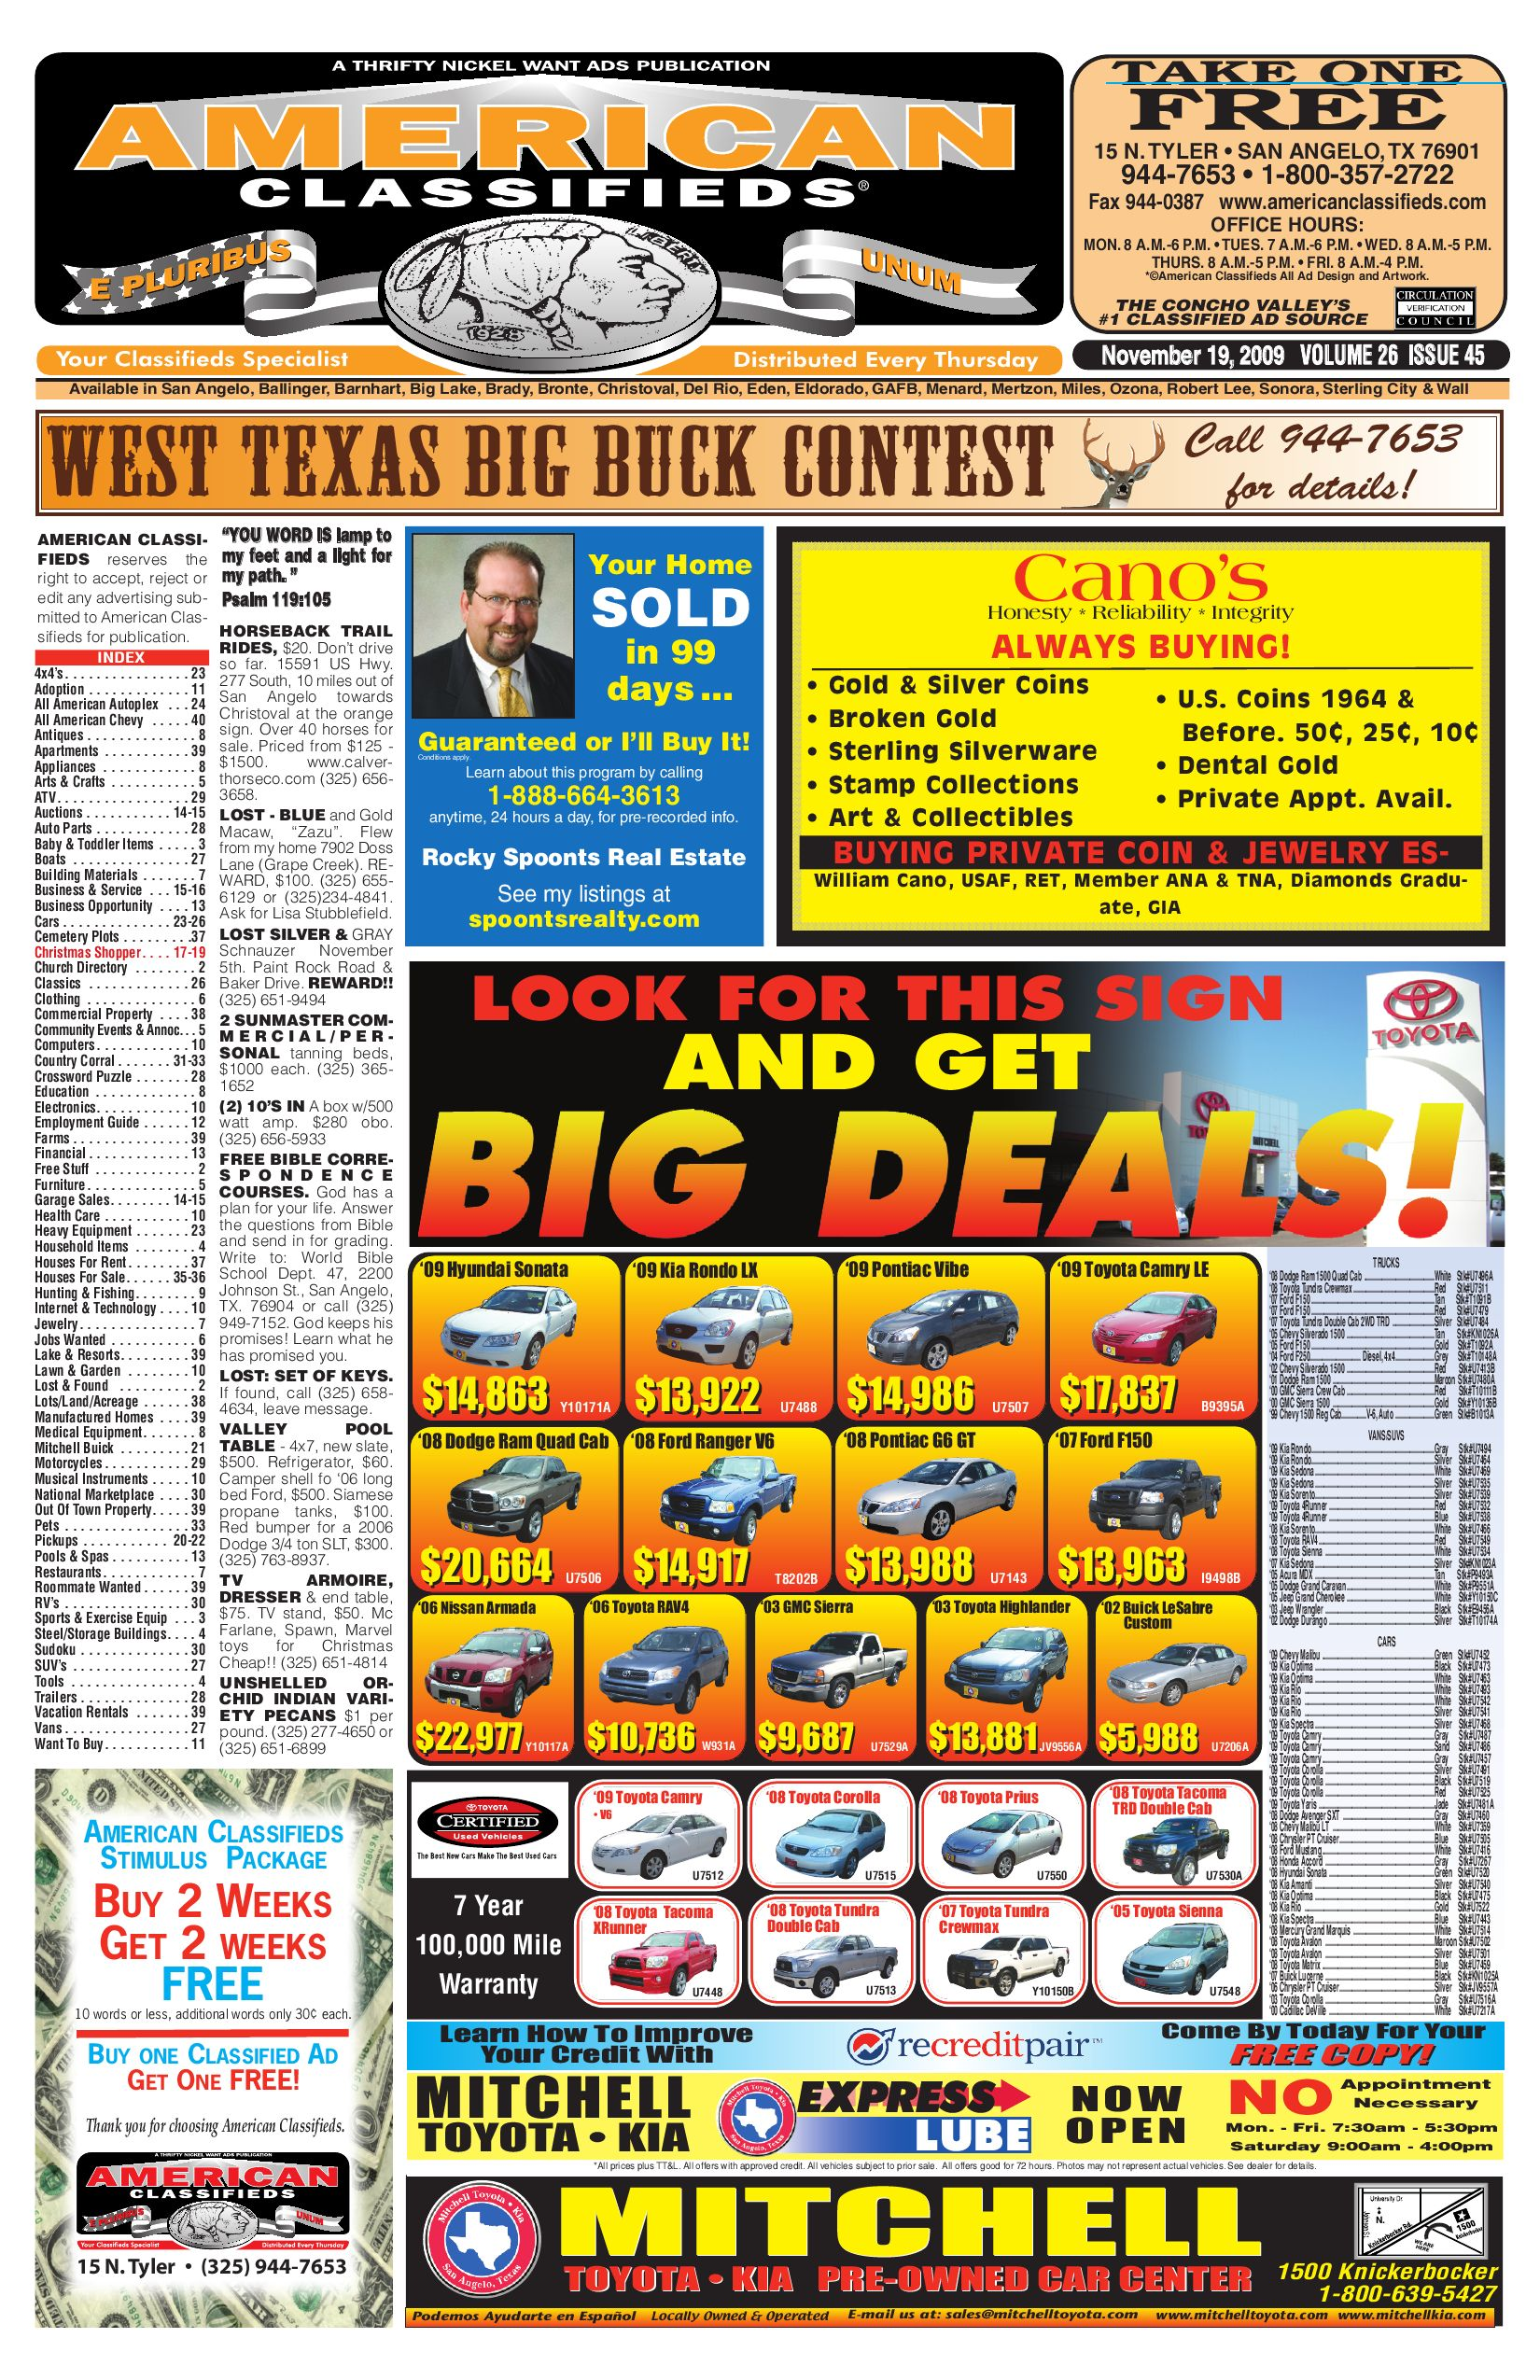 San Angelo American Classifieds By Remote Control Rc Mobil Super Heroes Avengers Civil War Mix 2409 Issuu